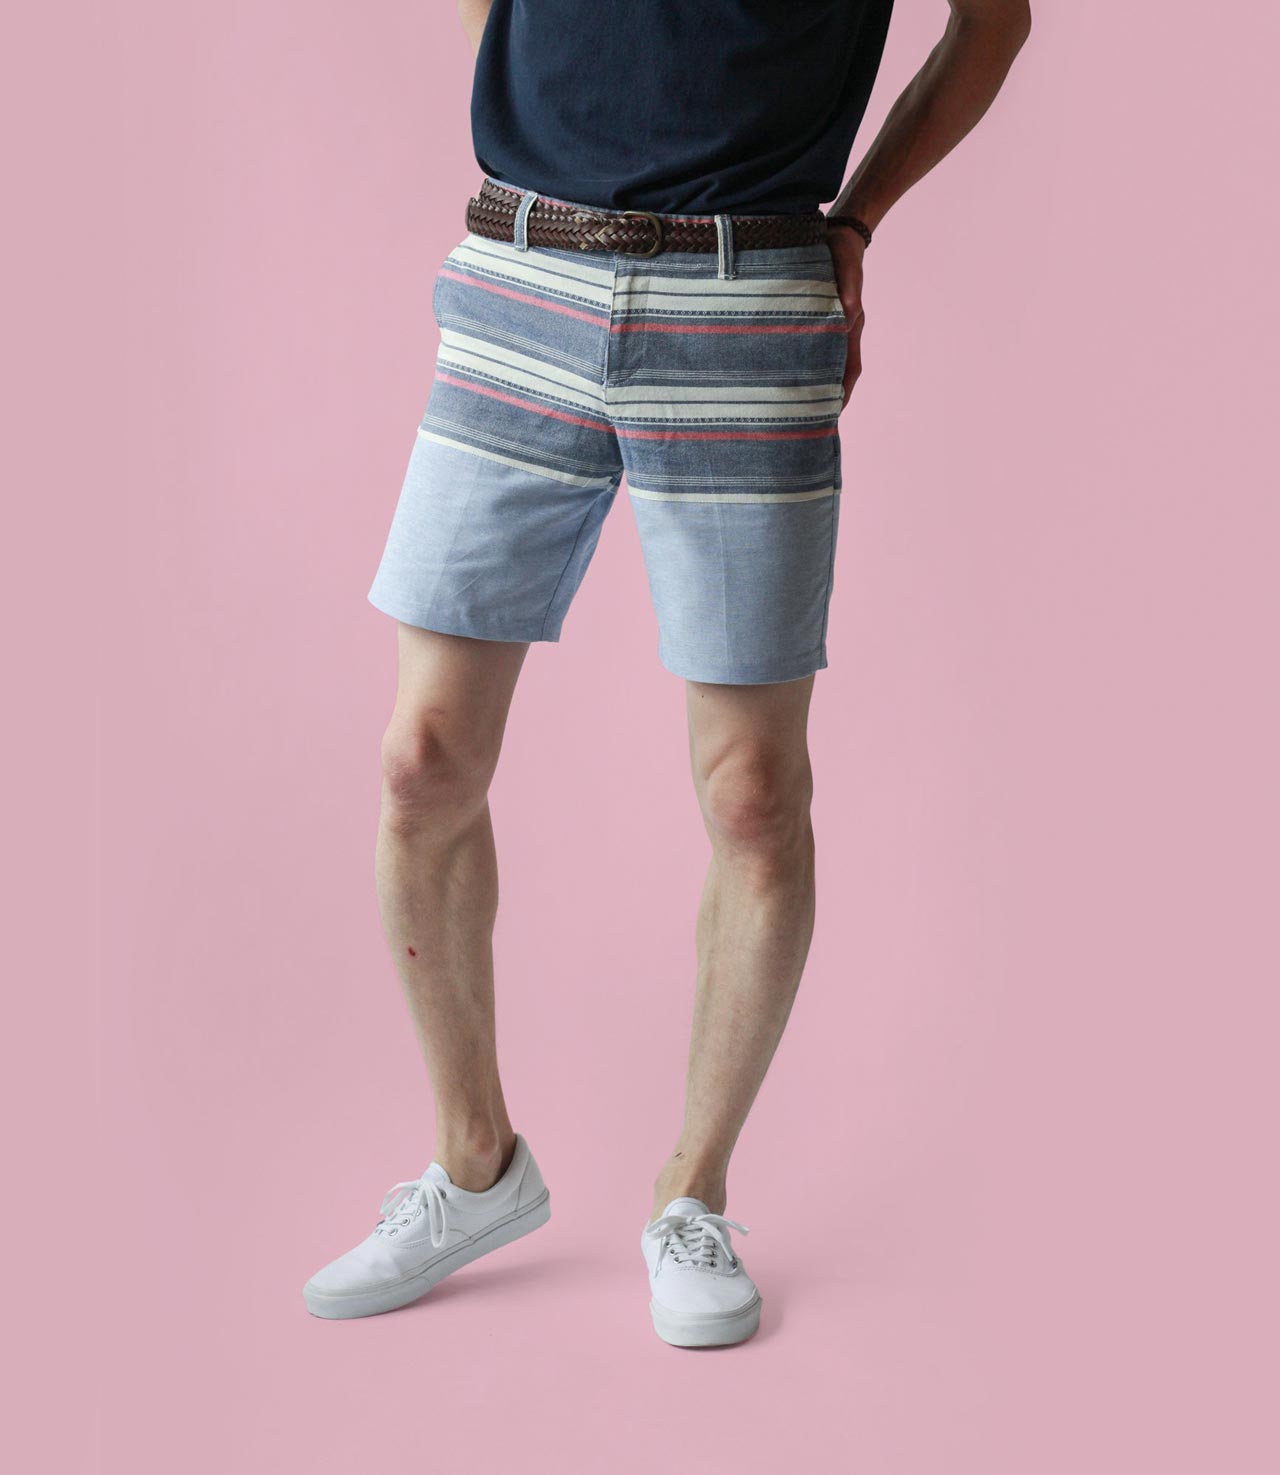 Turning women's shorts into mens pants